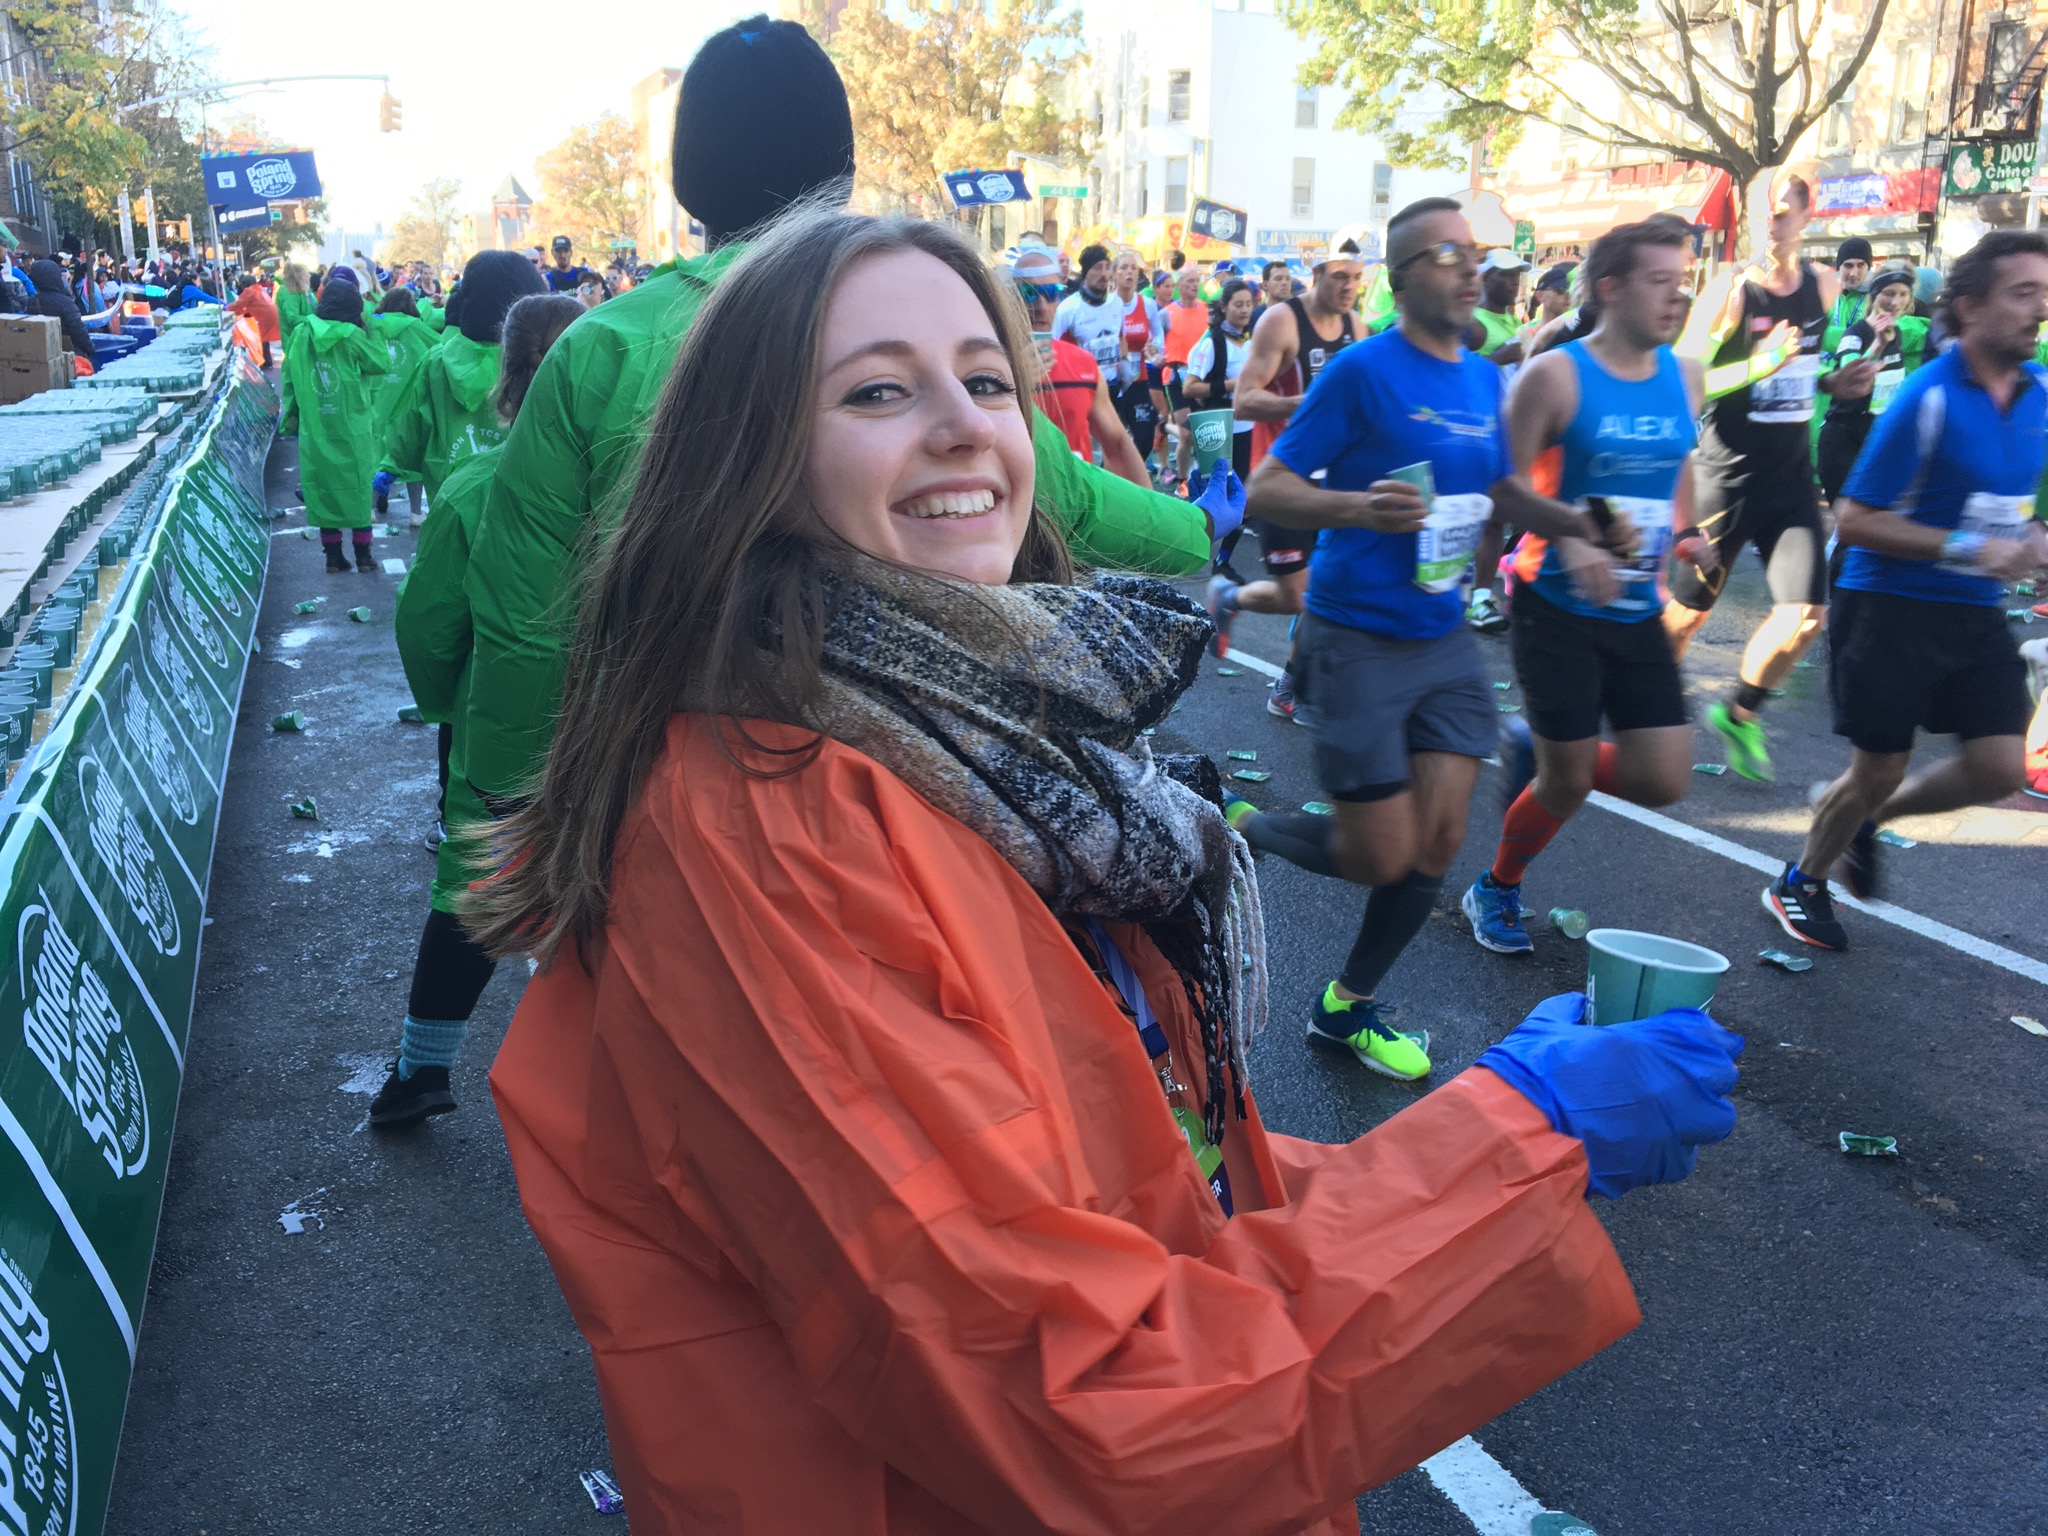 A volunteer with the Exchange Visitor Program hands out water during the TCS NYC Marathon.